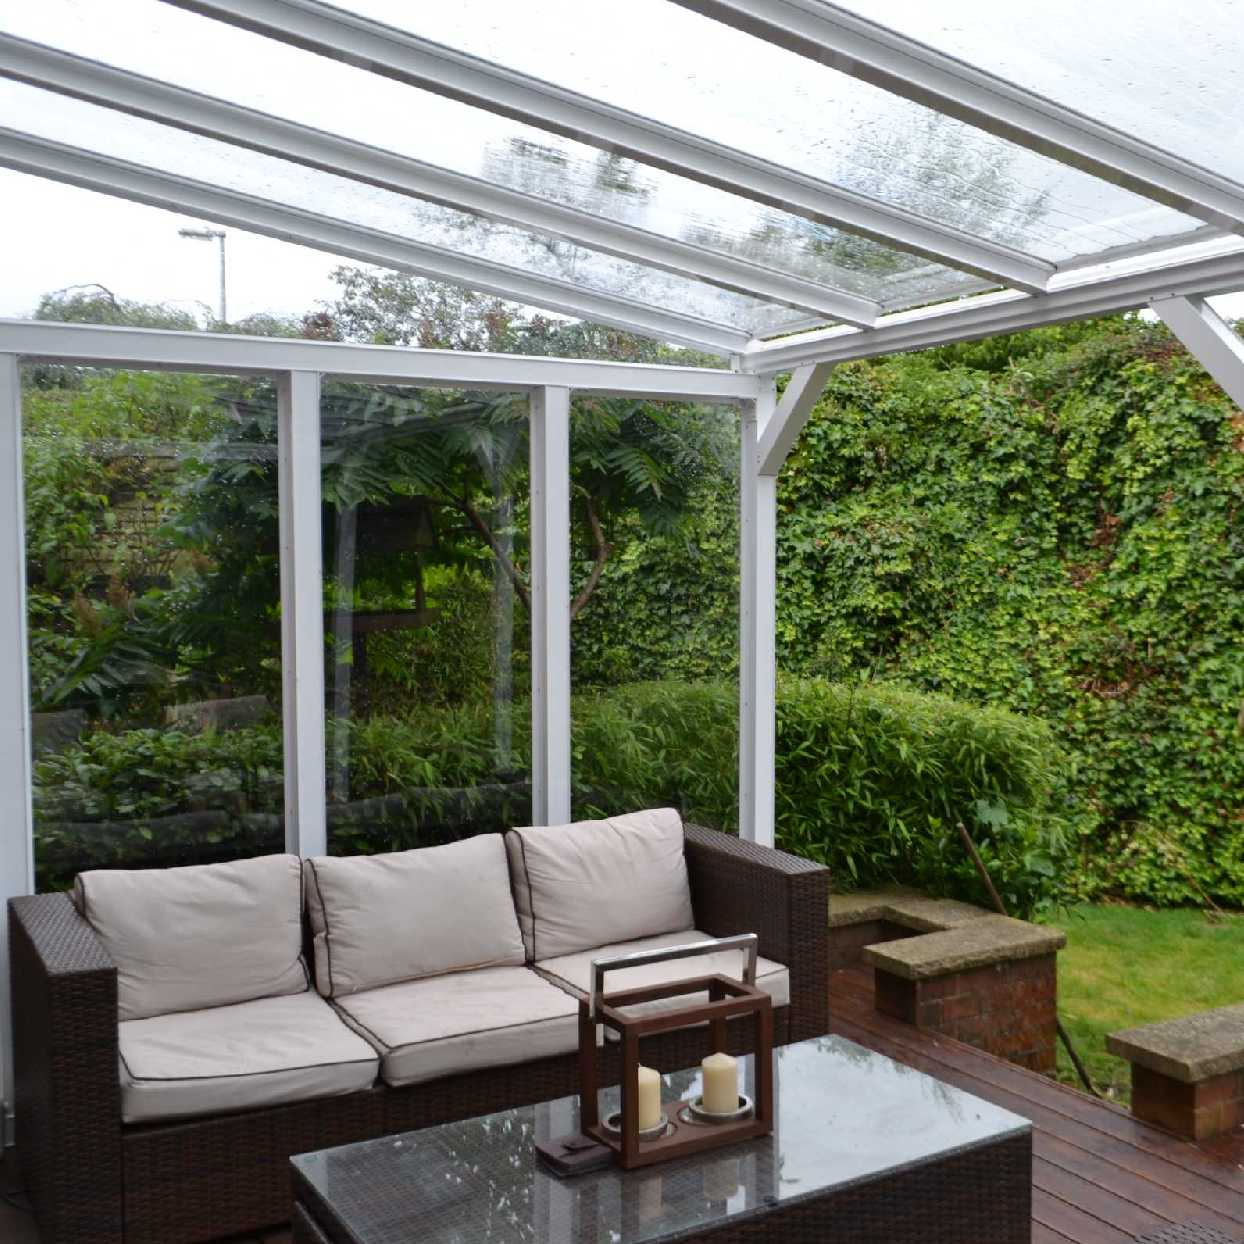 Great selection of Omega Smart Lean-To Canopy with 16mm Polycarbonate Glazing - 2.8m (W) x 3.5m (P), (2) Supporting Posts